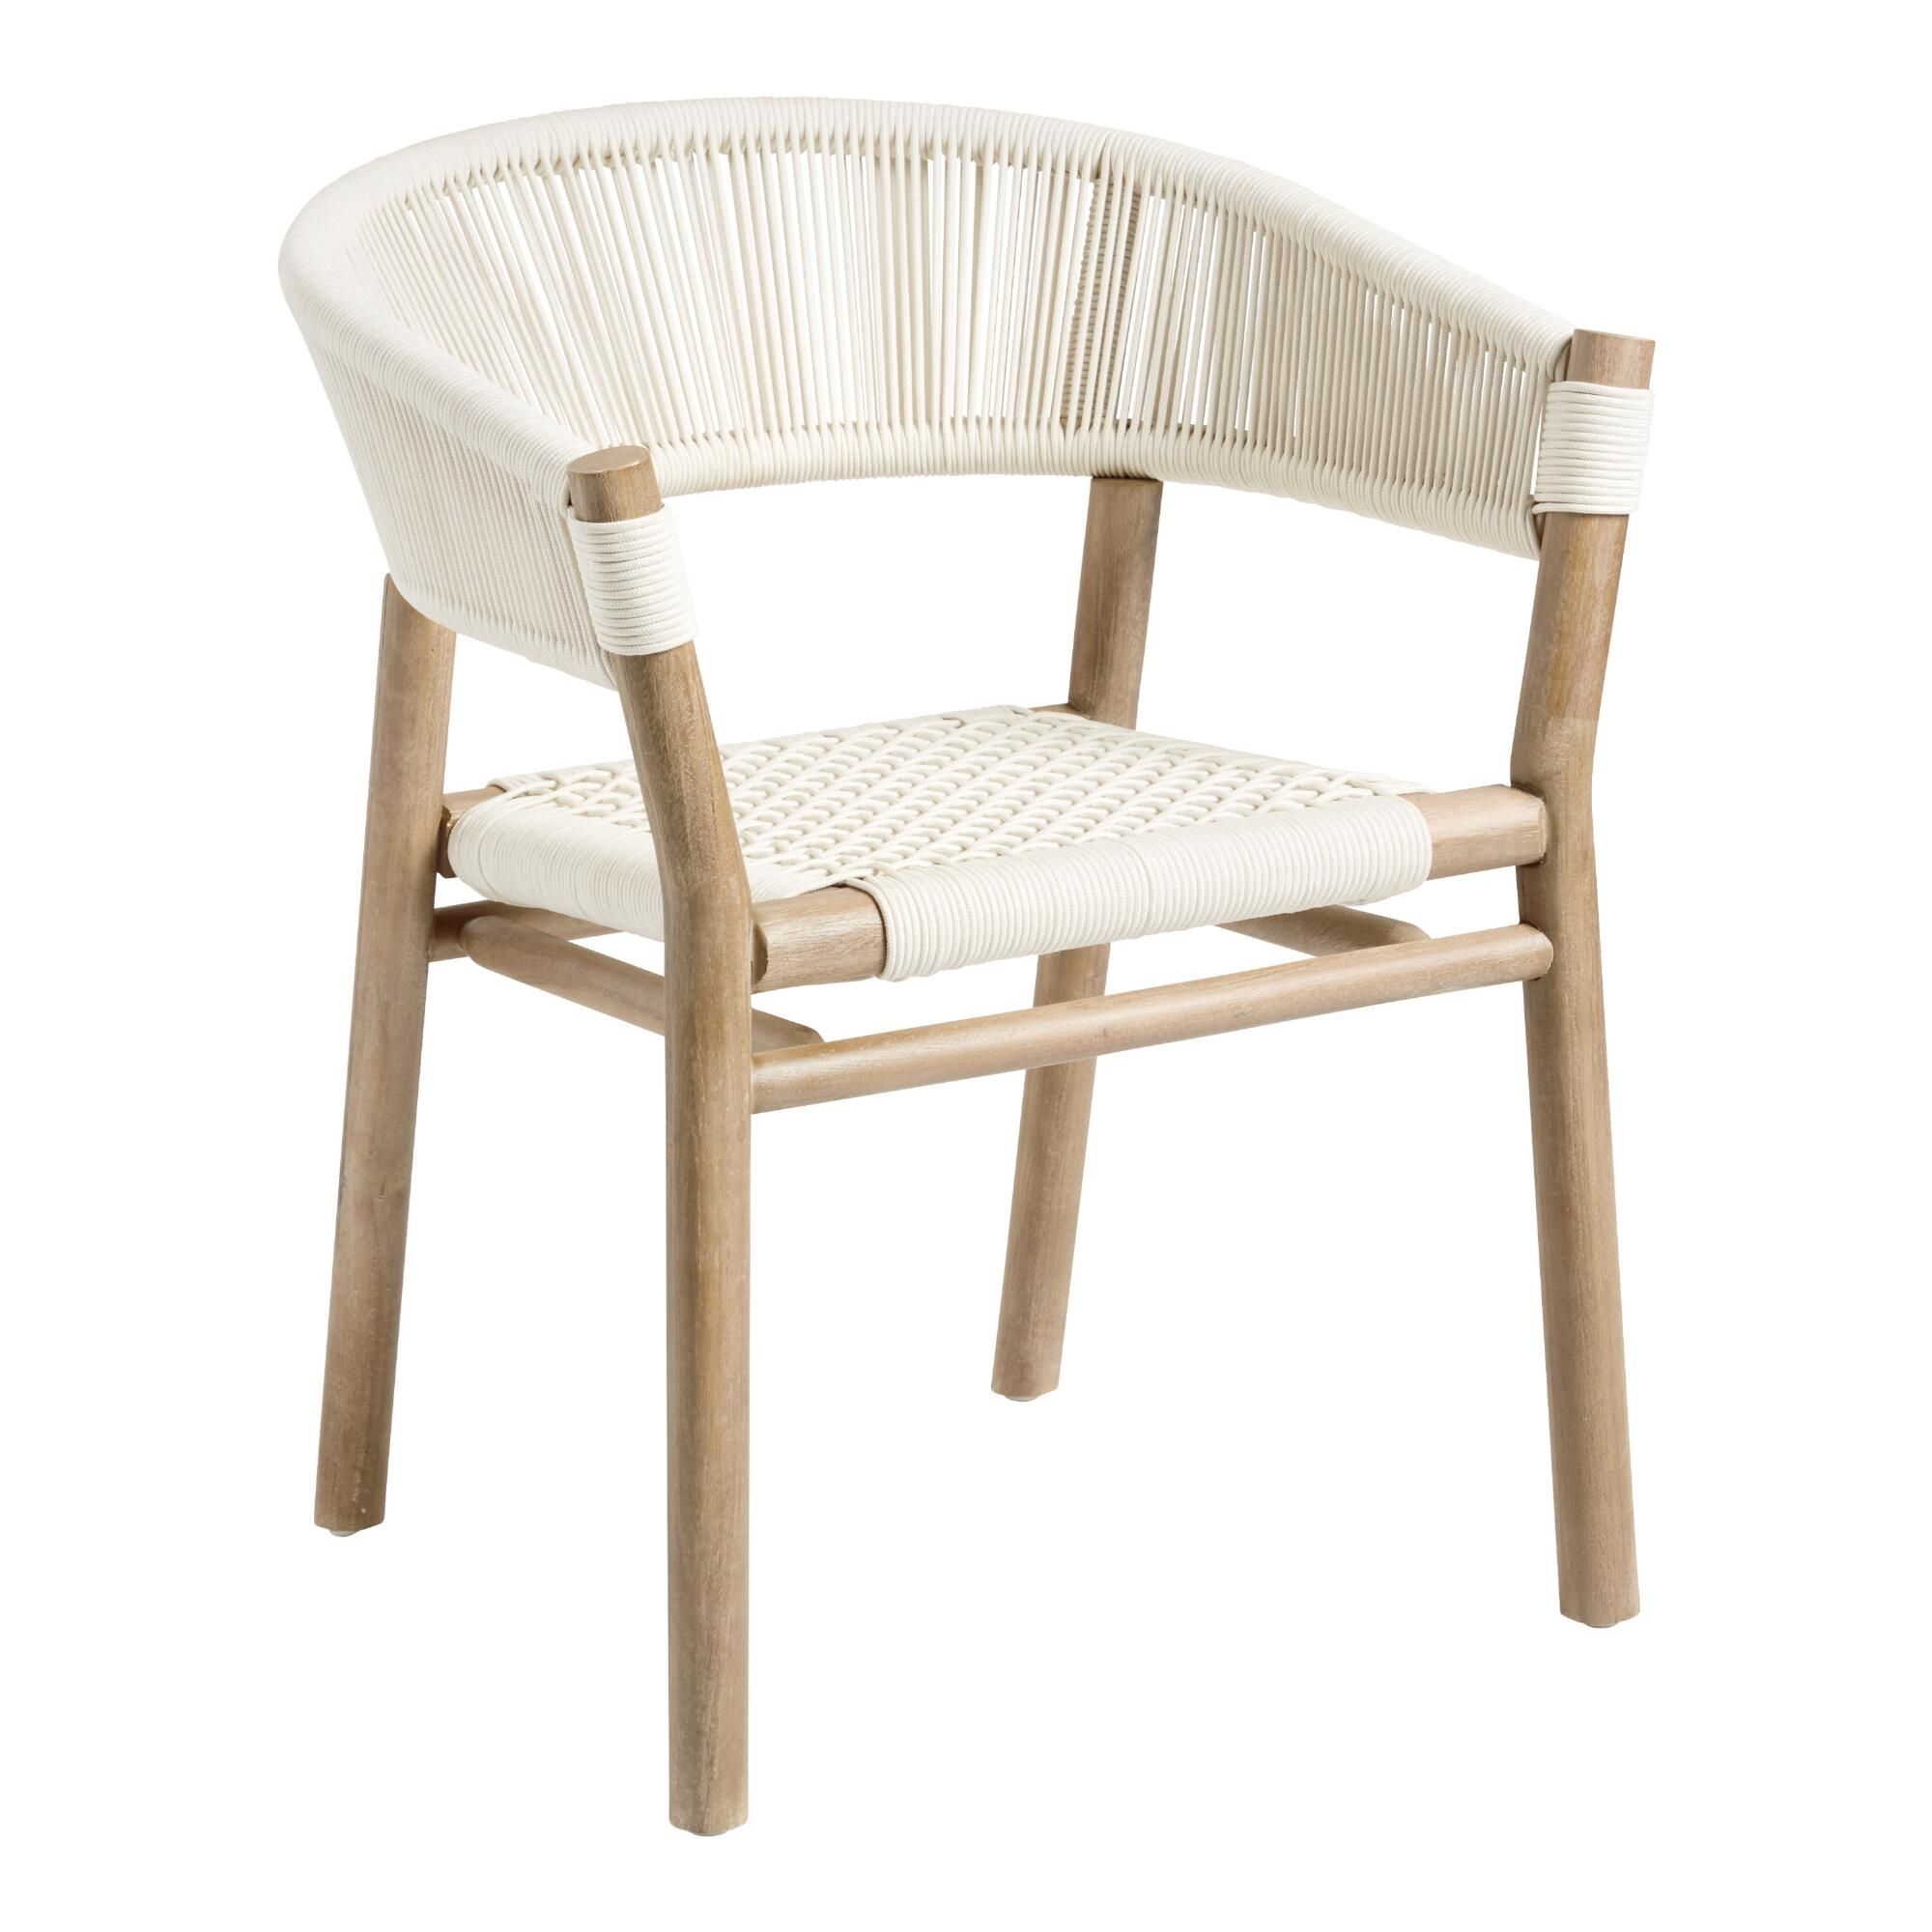 Antique White Rope Cabrillo Outdoor Patio Dining Chair Wood By World Market Outdoor Dining Chairs Outdoor Dining Furniture World Market Dining Chairs White outdoor dining chairs